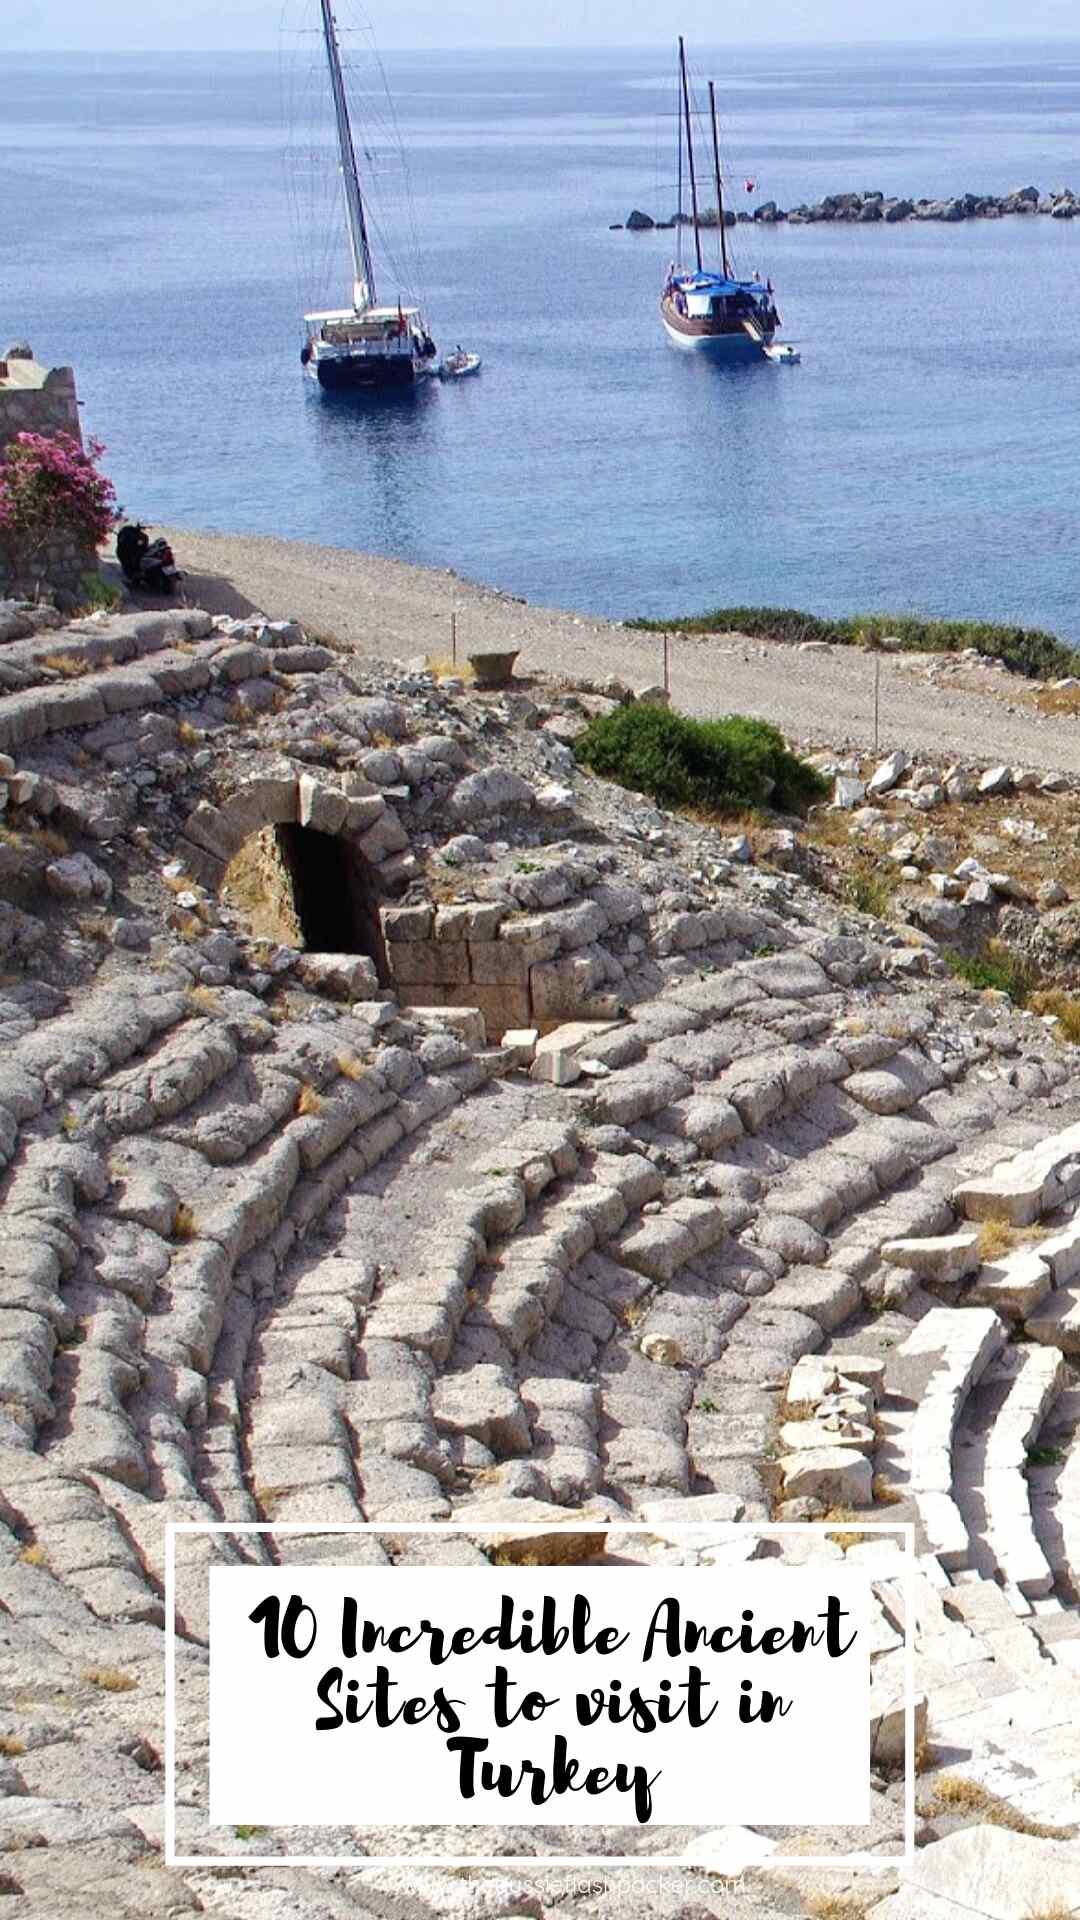 Ten Incredible Ancient Sites to visit in Turkey